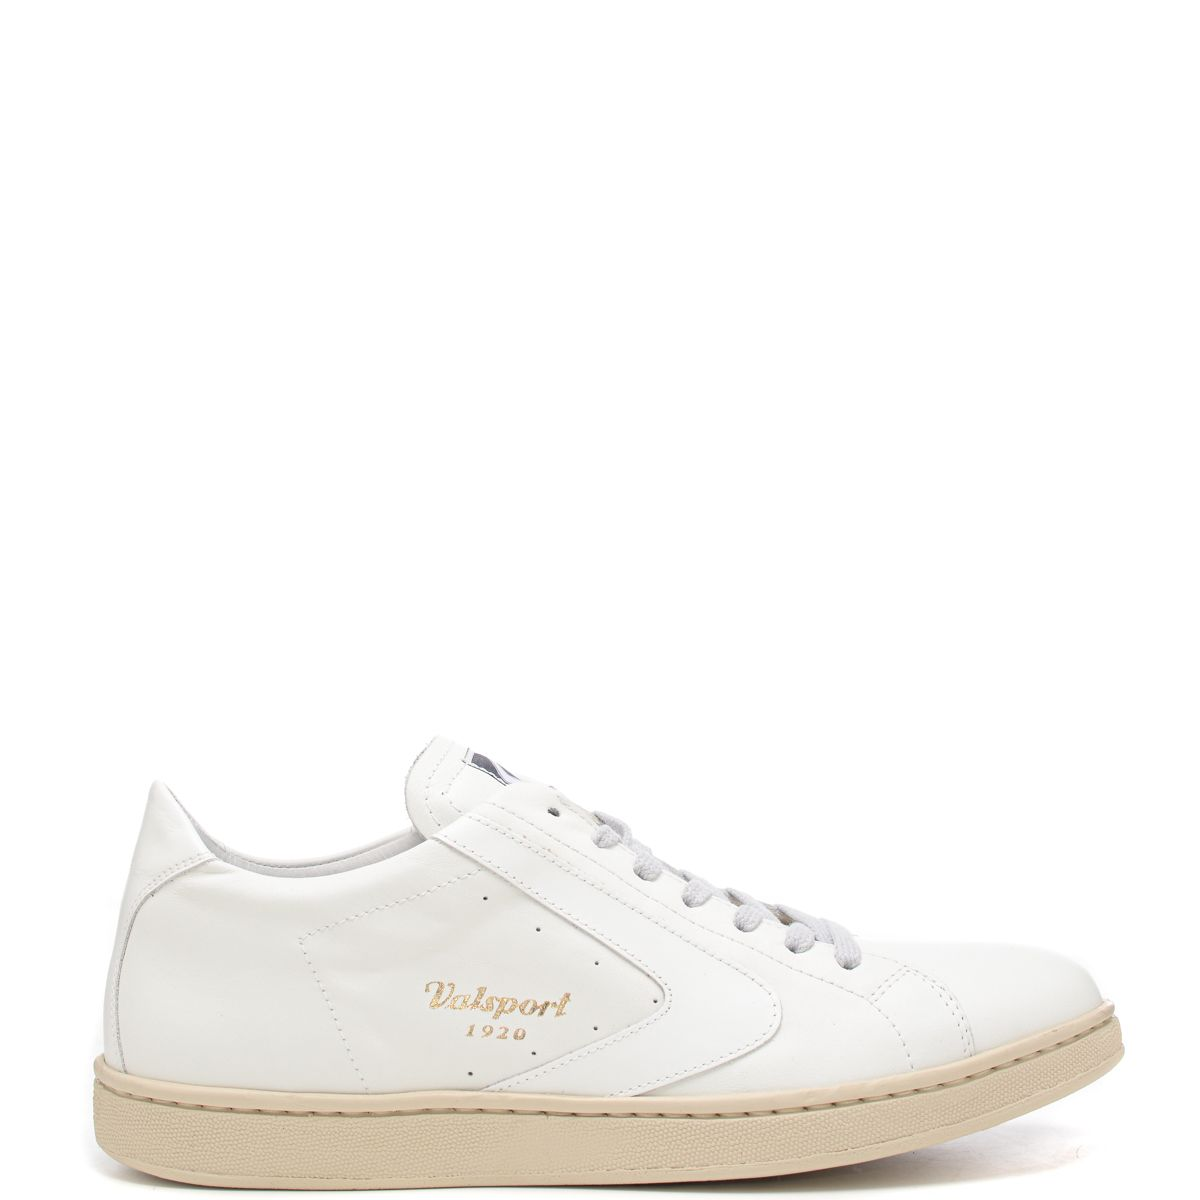 Valsport Sneakers Tournament Nappa Total